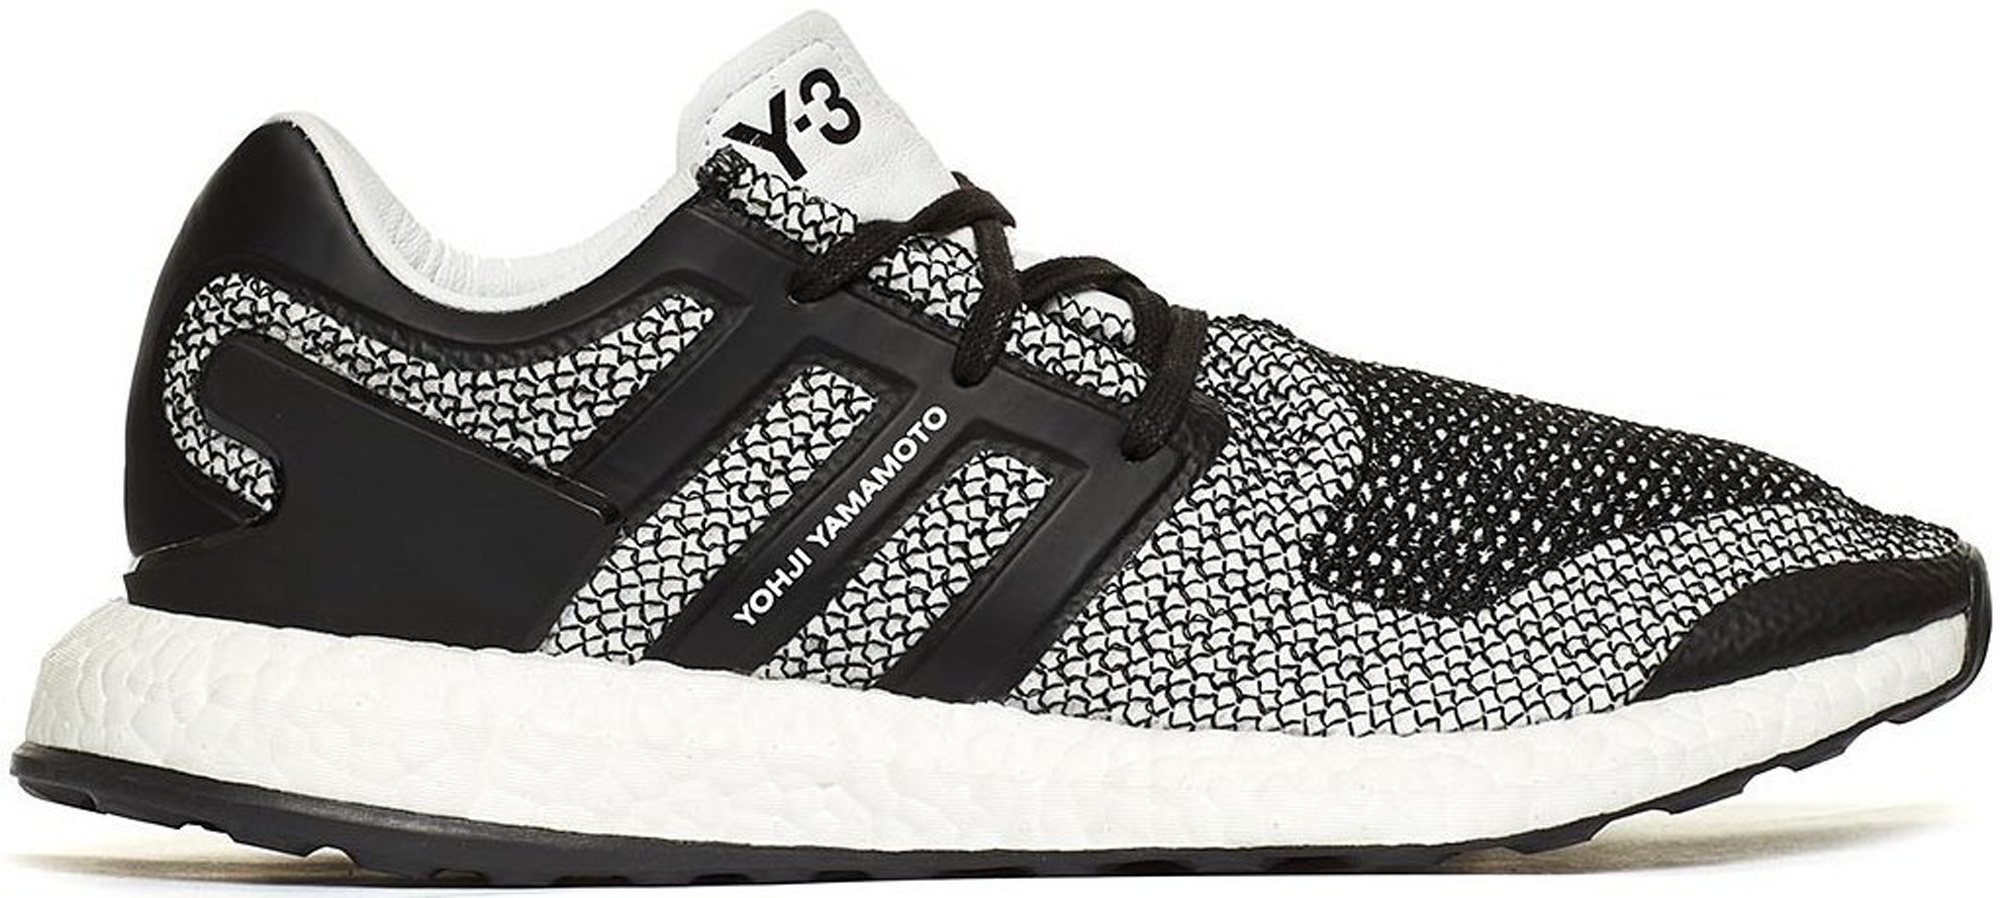 adidas Y-3 Pure Boost White Black